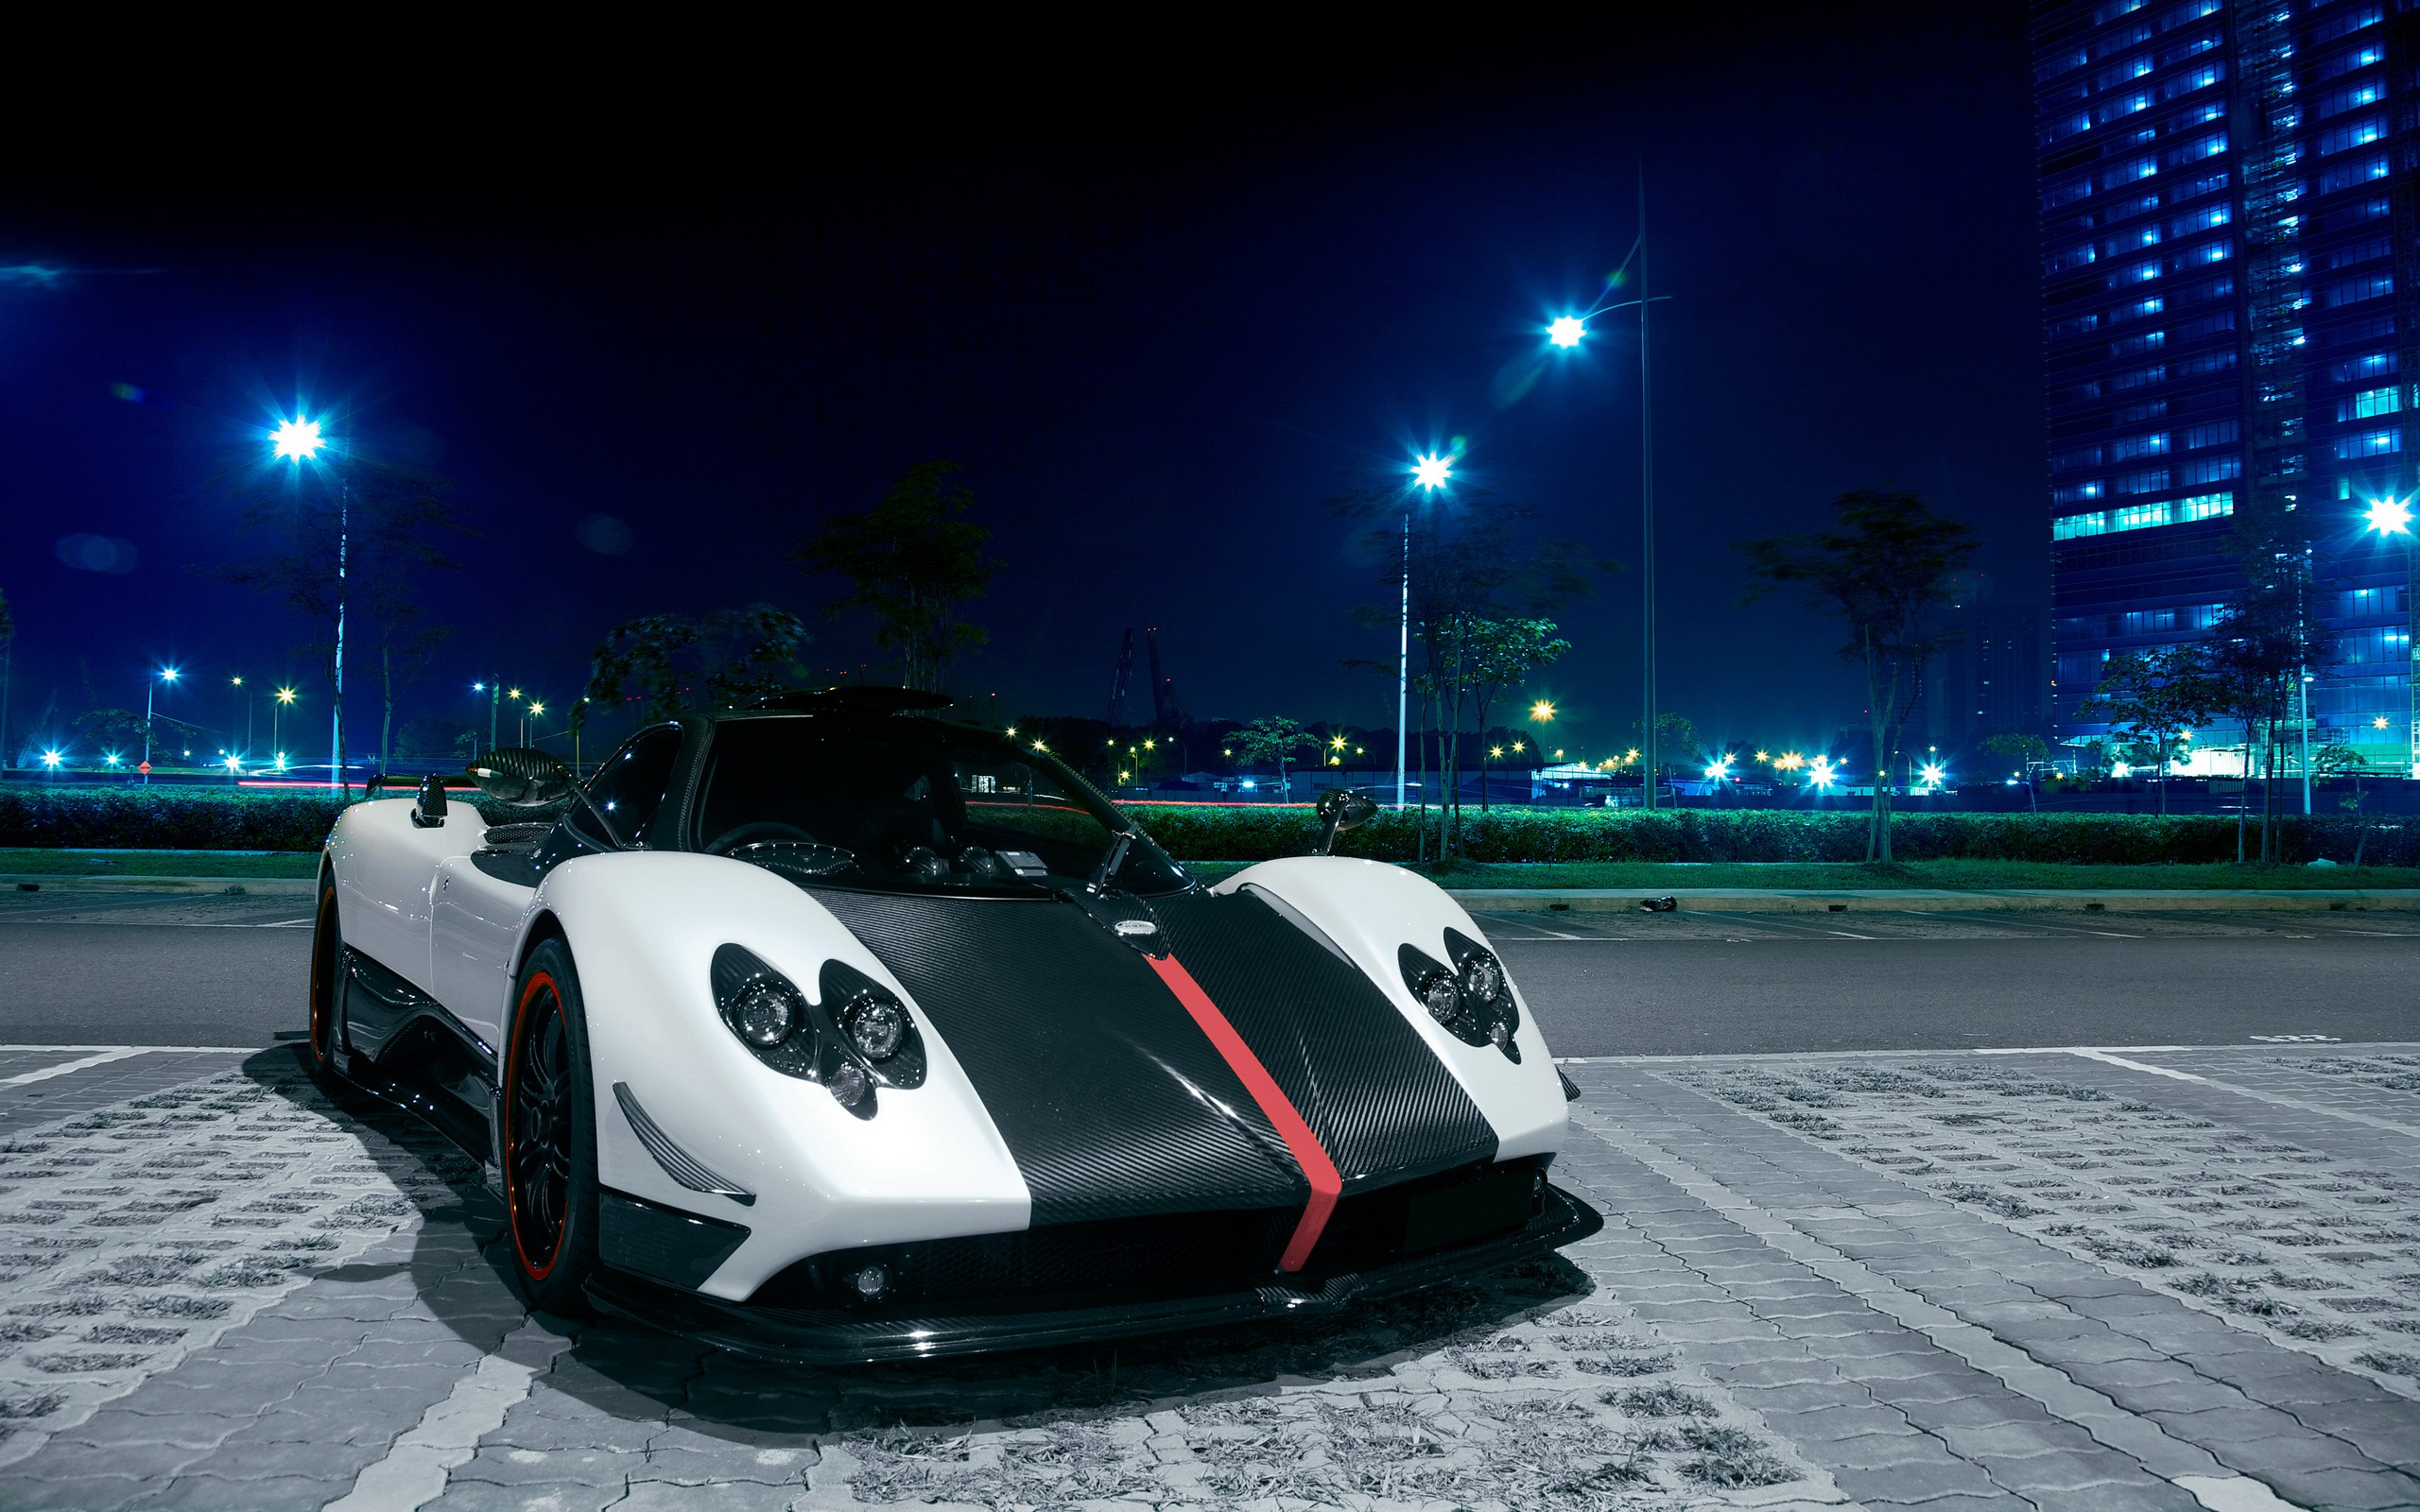 Pagani-Zonda-Sexy-Sports-Car-Wallpaper